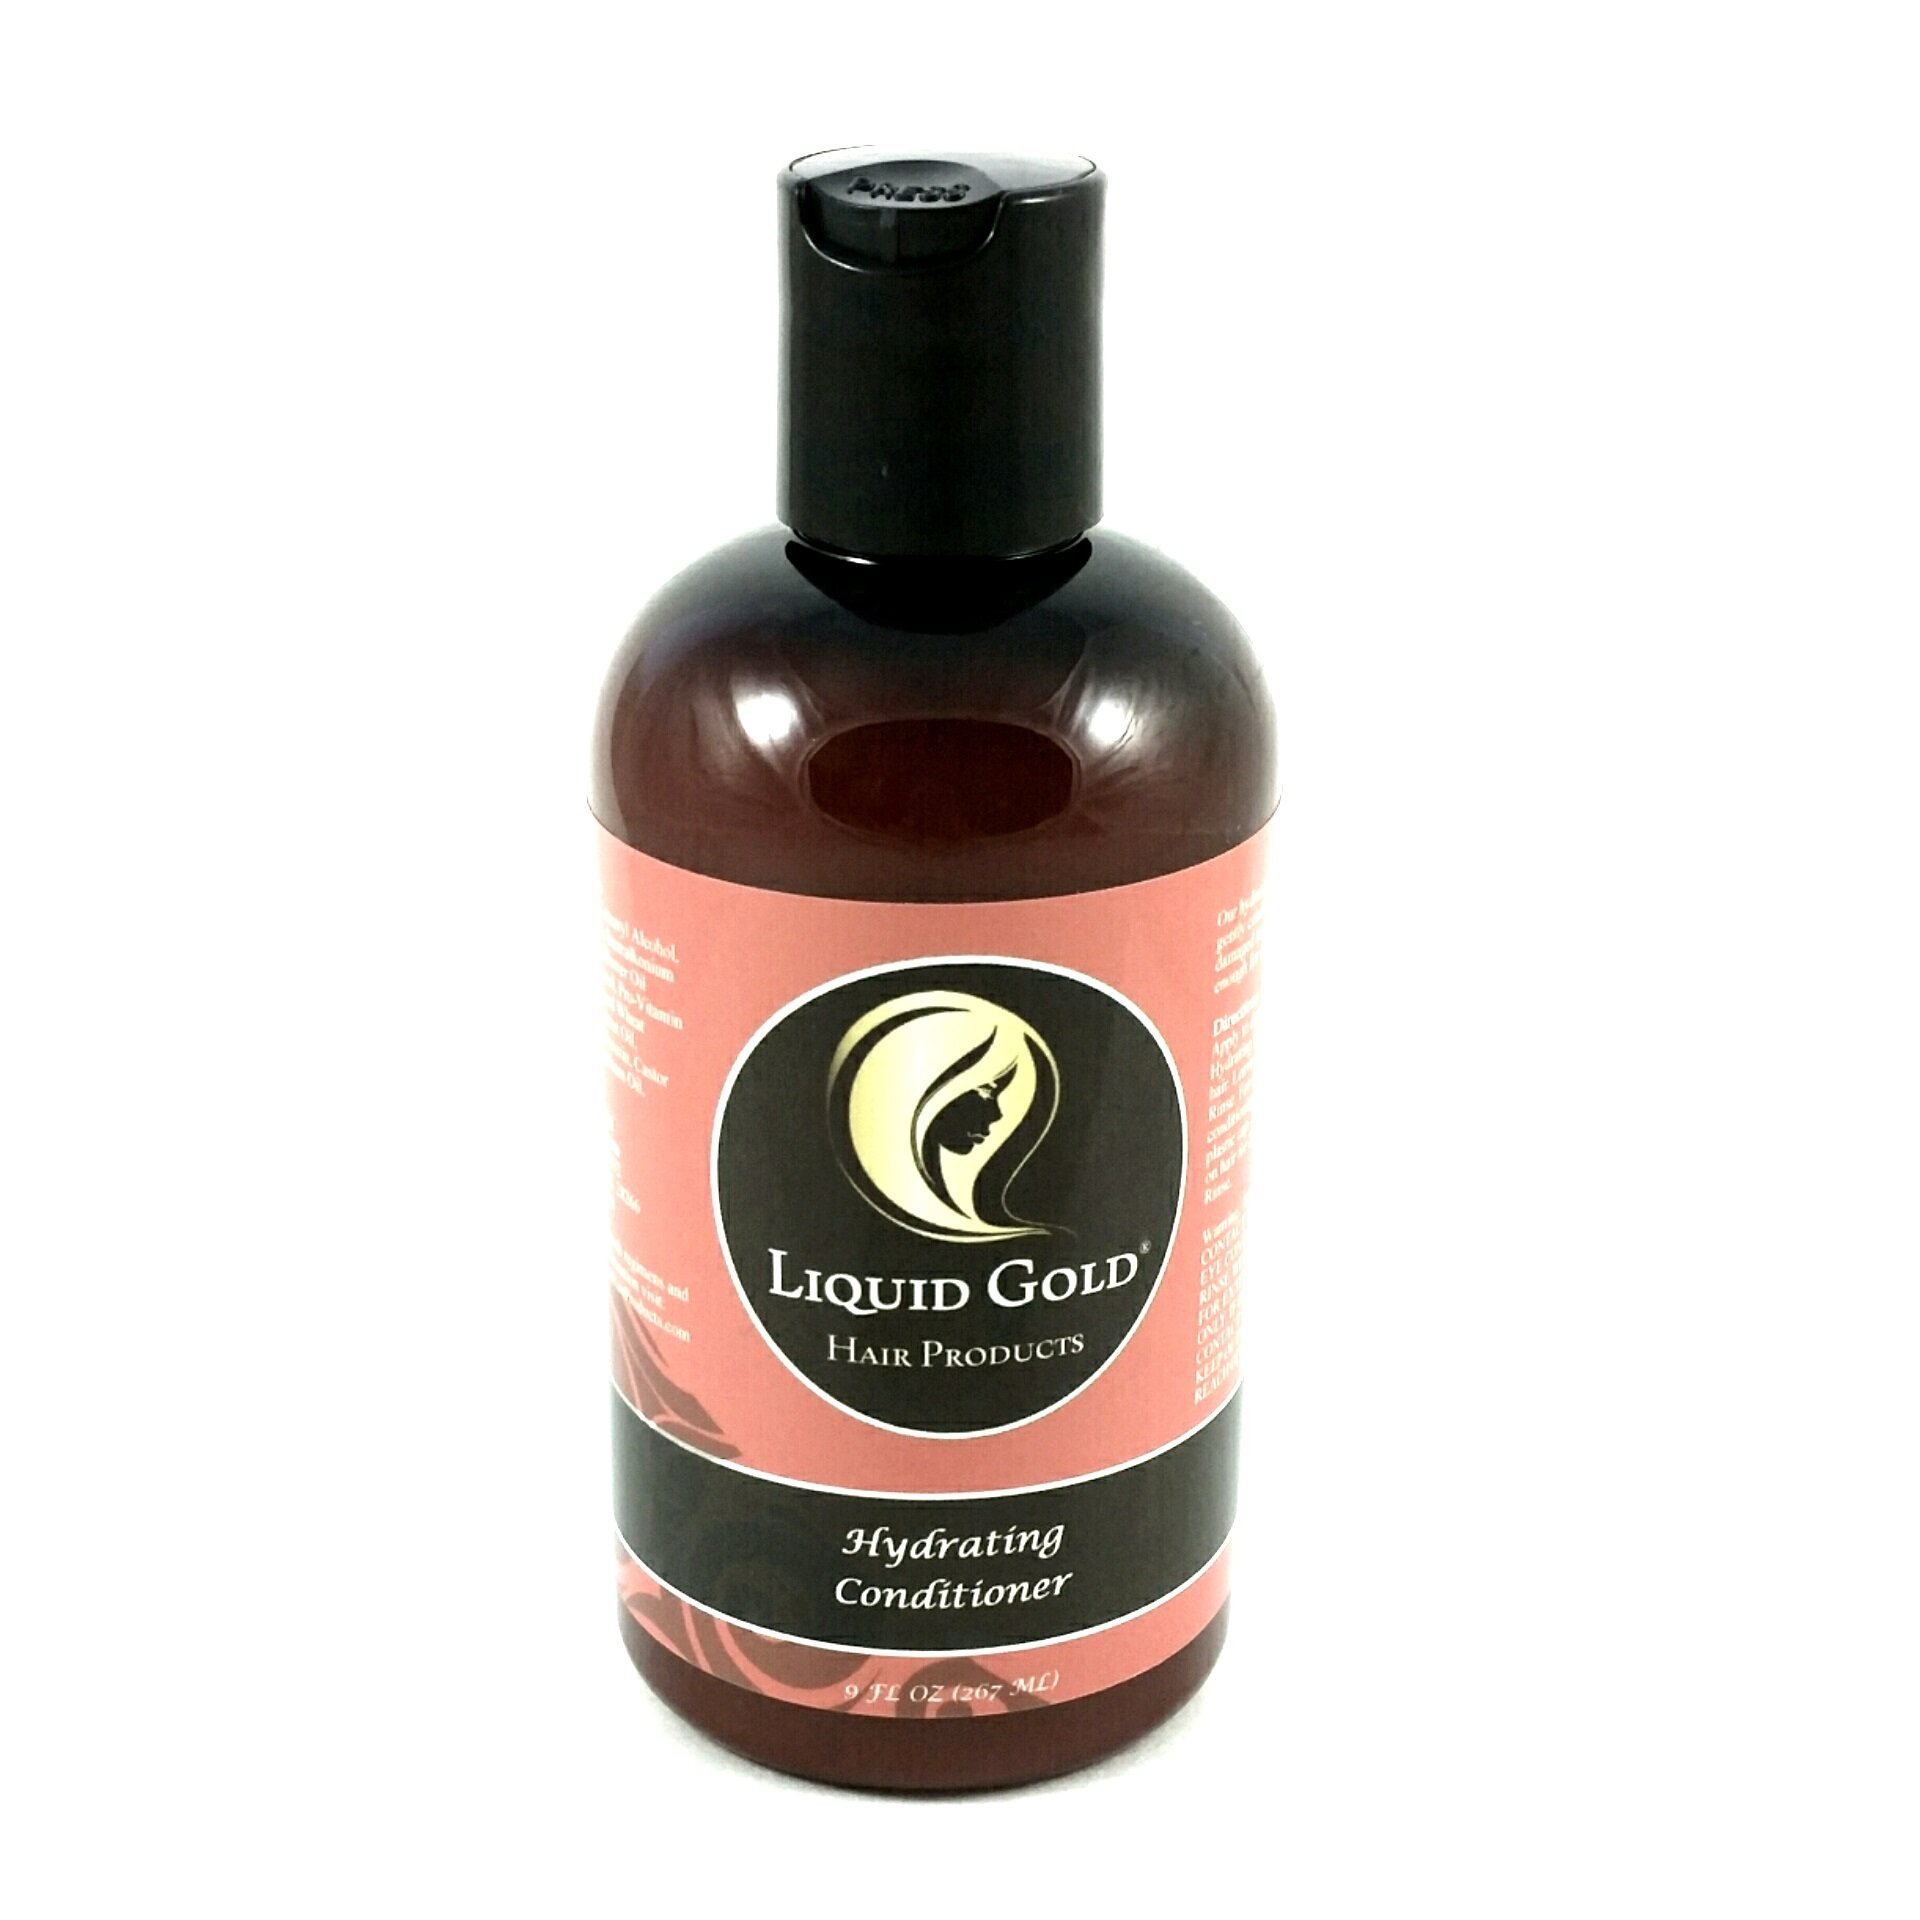 Hydrating Conditioner By Liquid Gold Hair Products